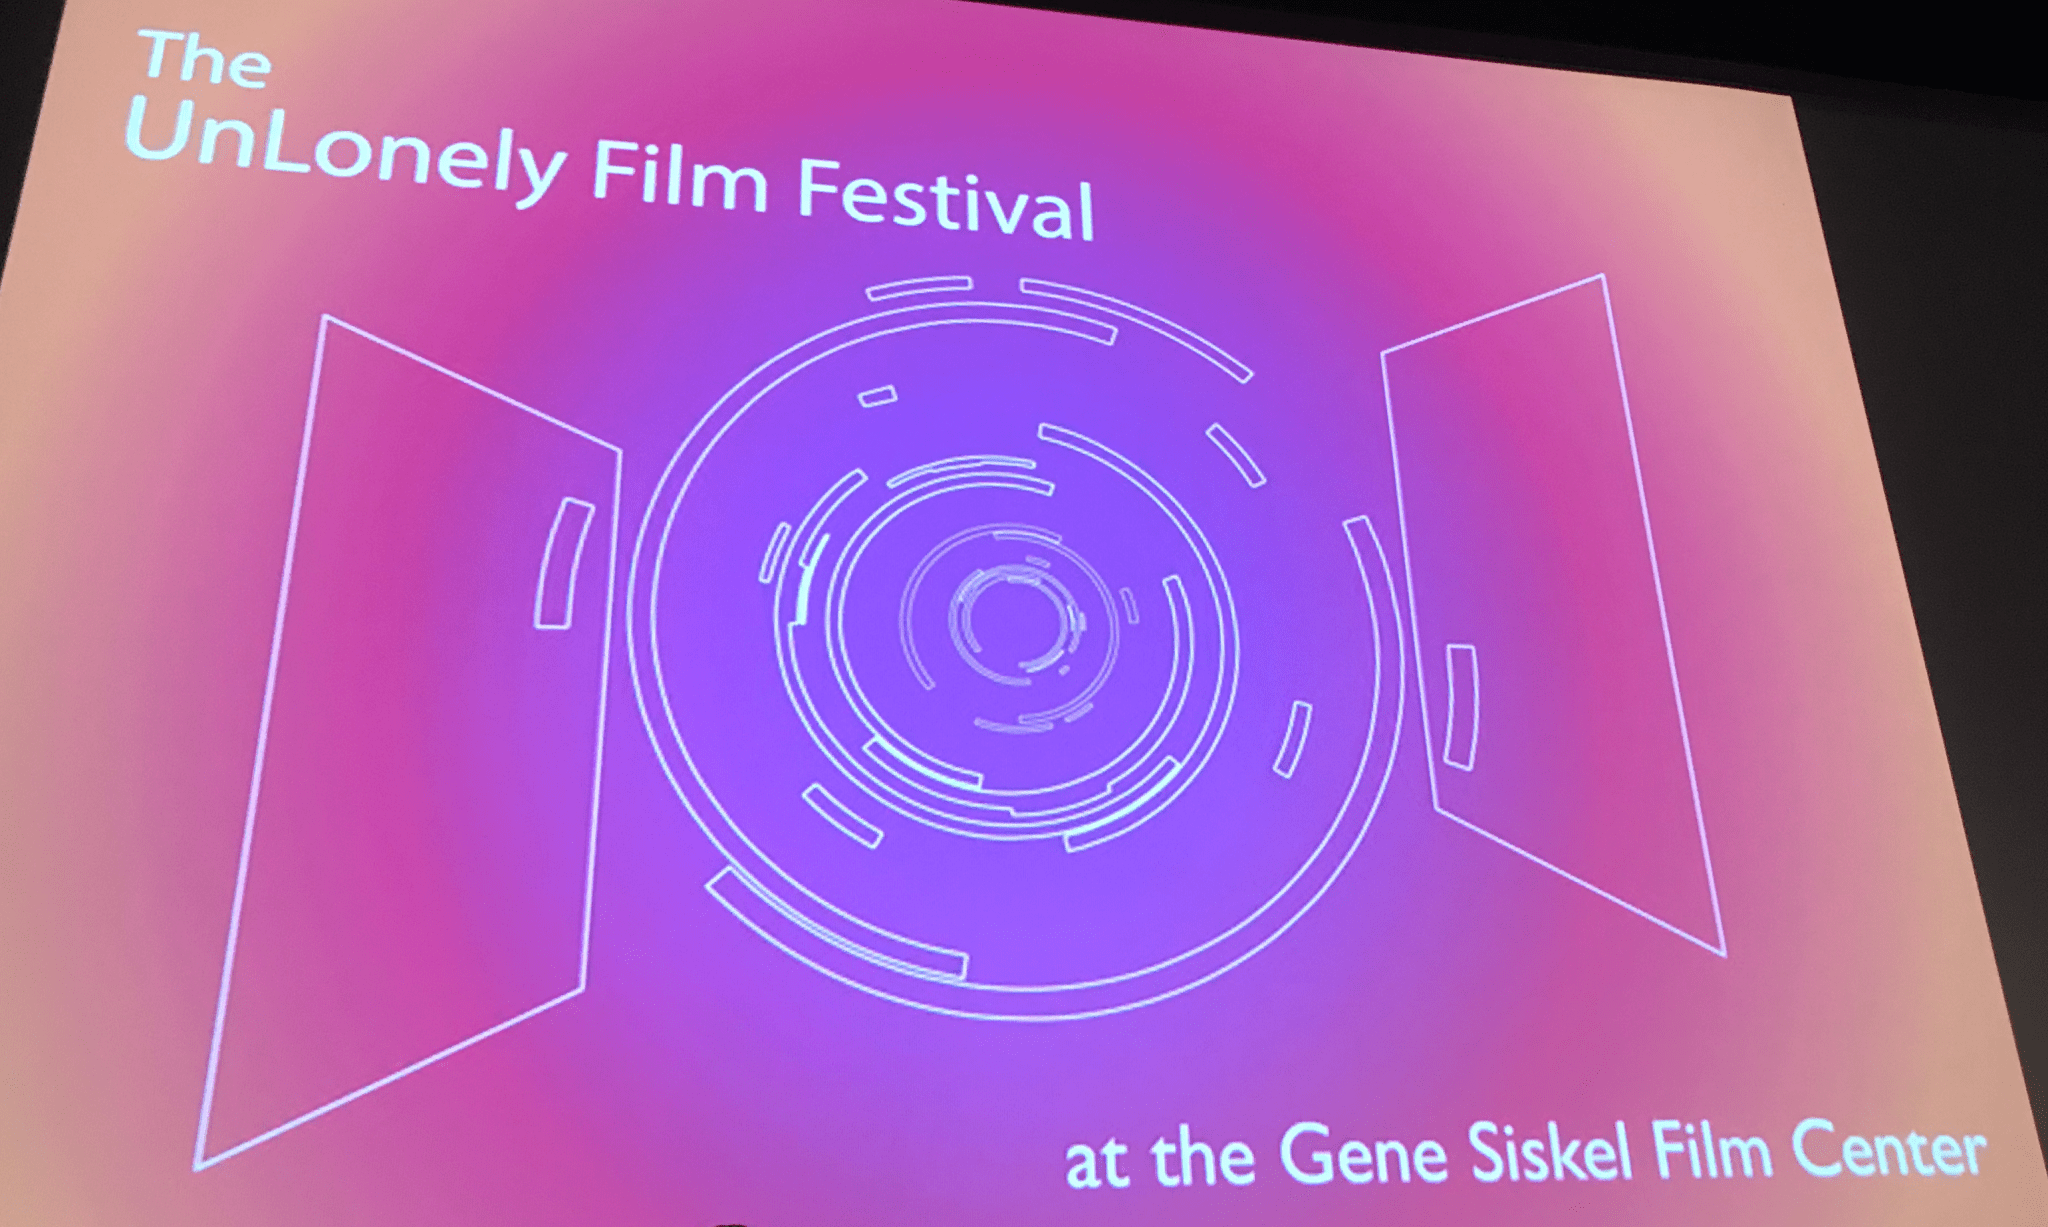 UnLonely Impact Event at the Gene Siskel Film Center